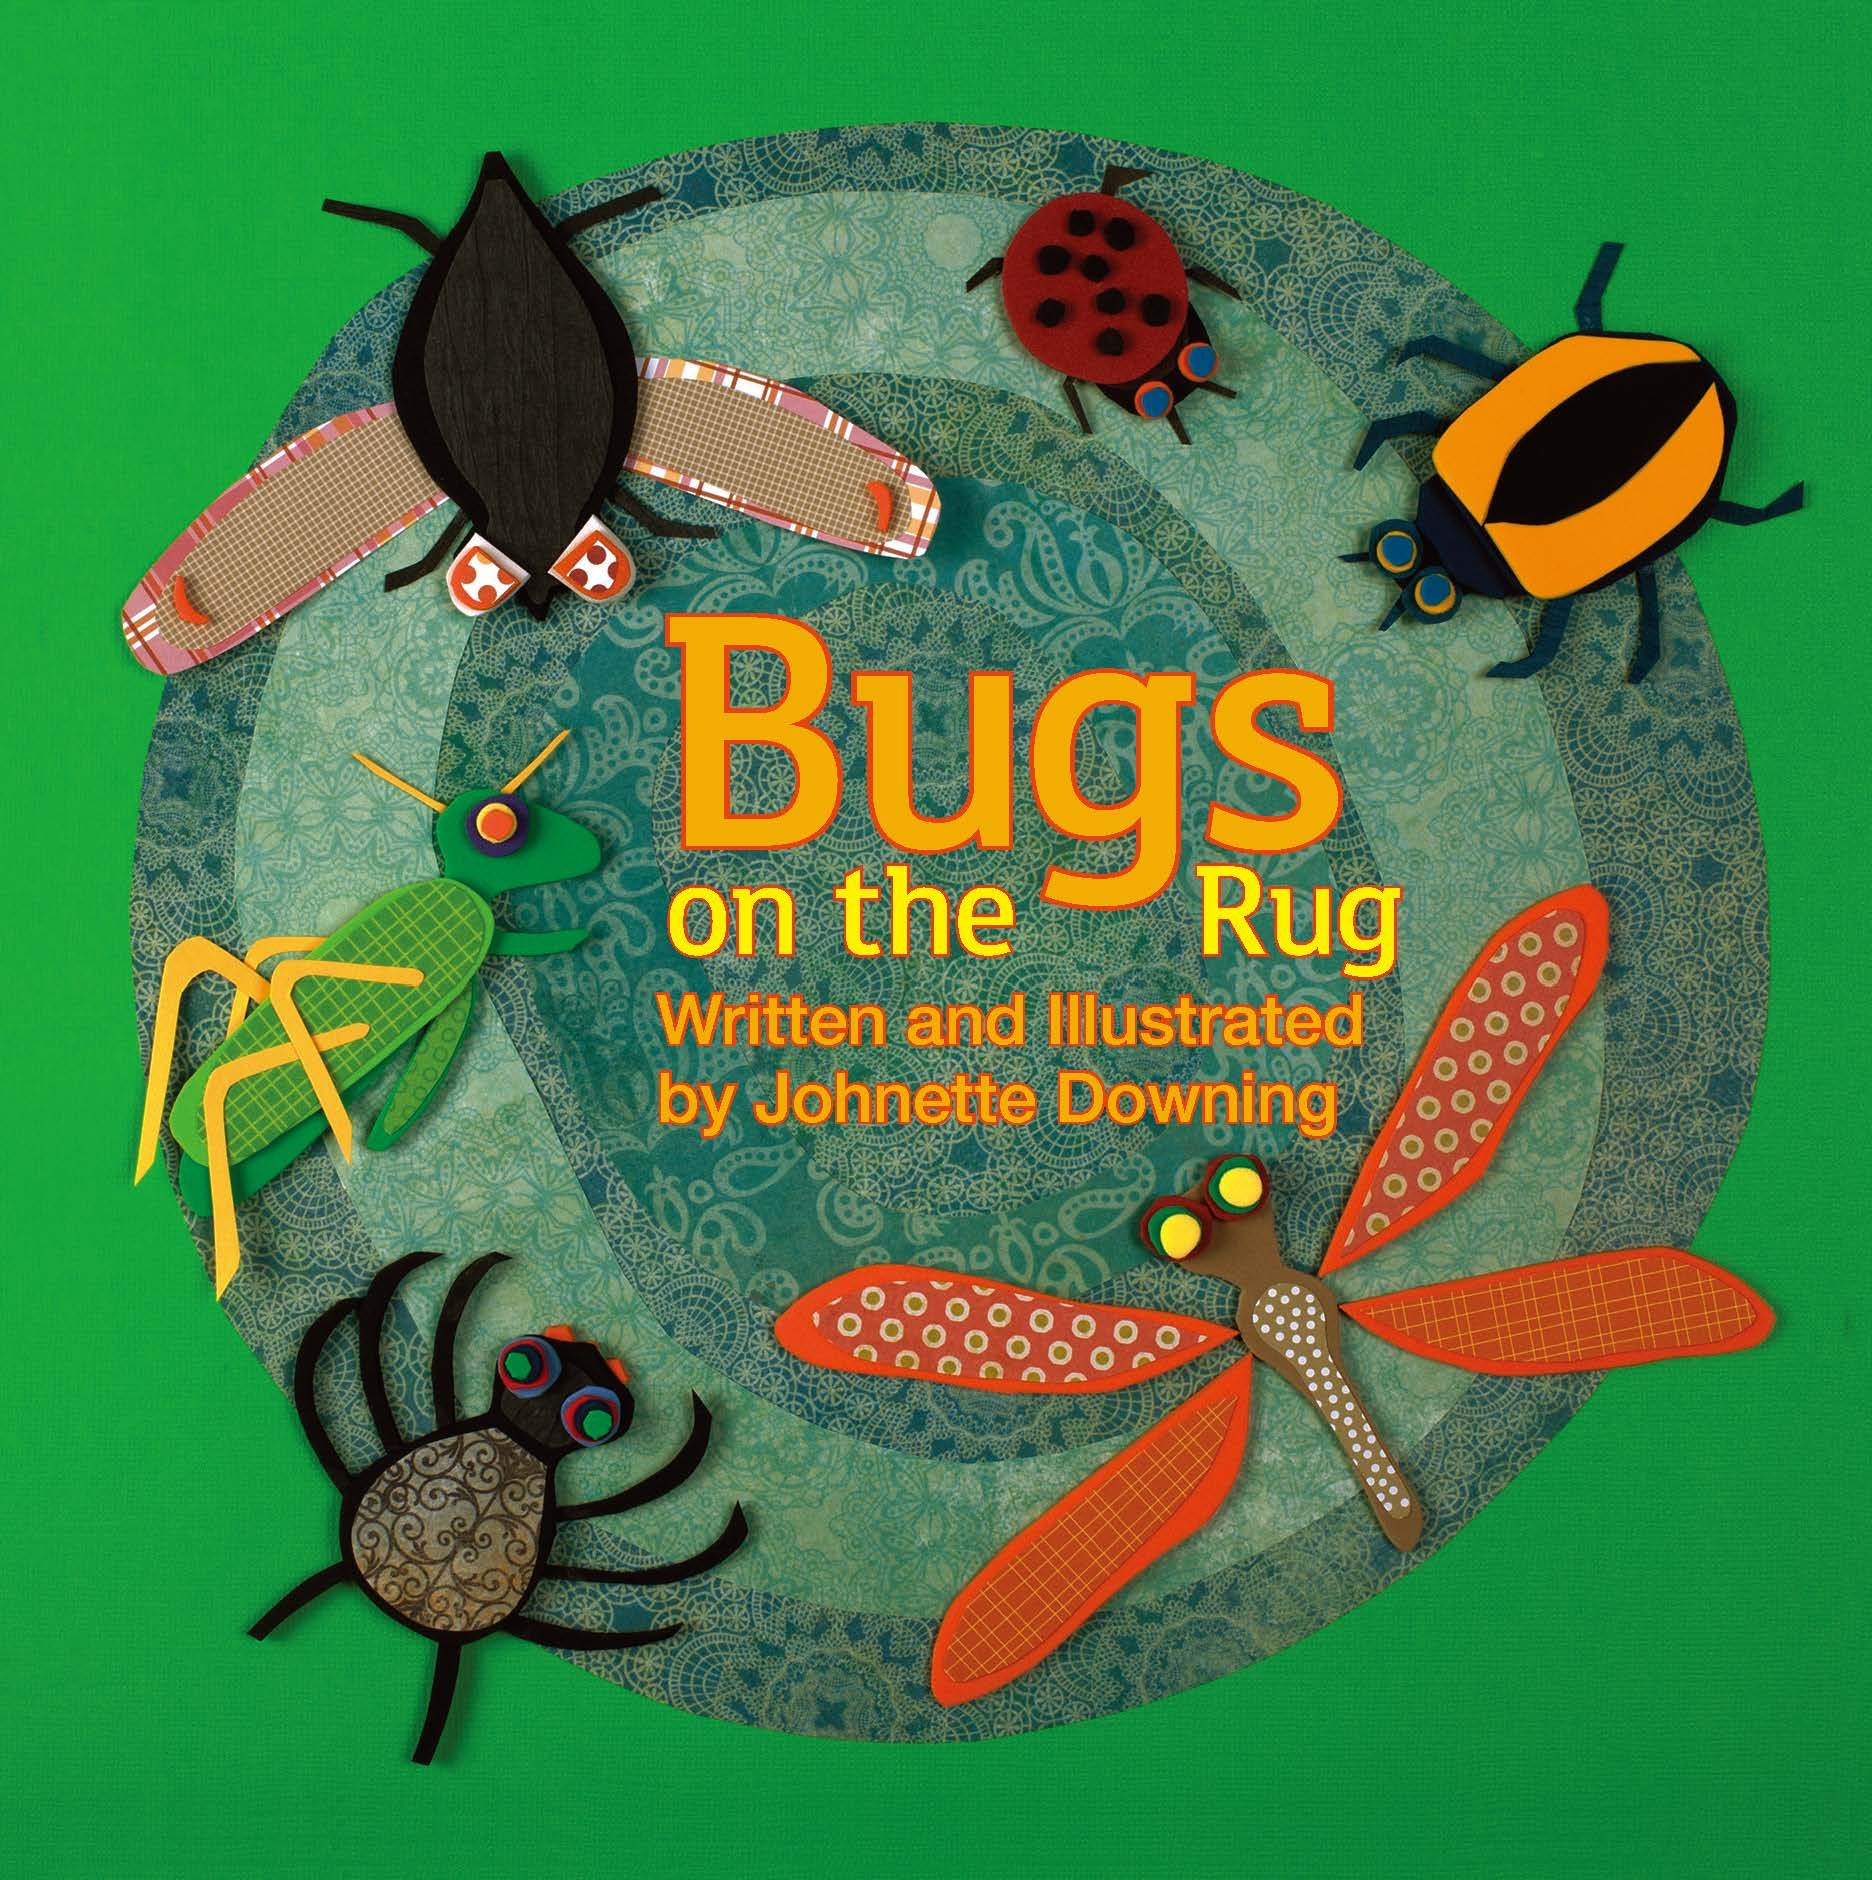 Bugs on the Rug,9781941879030